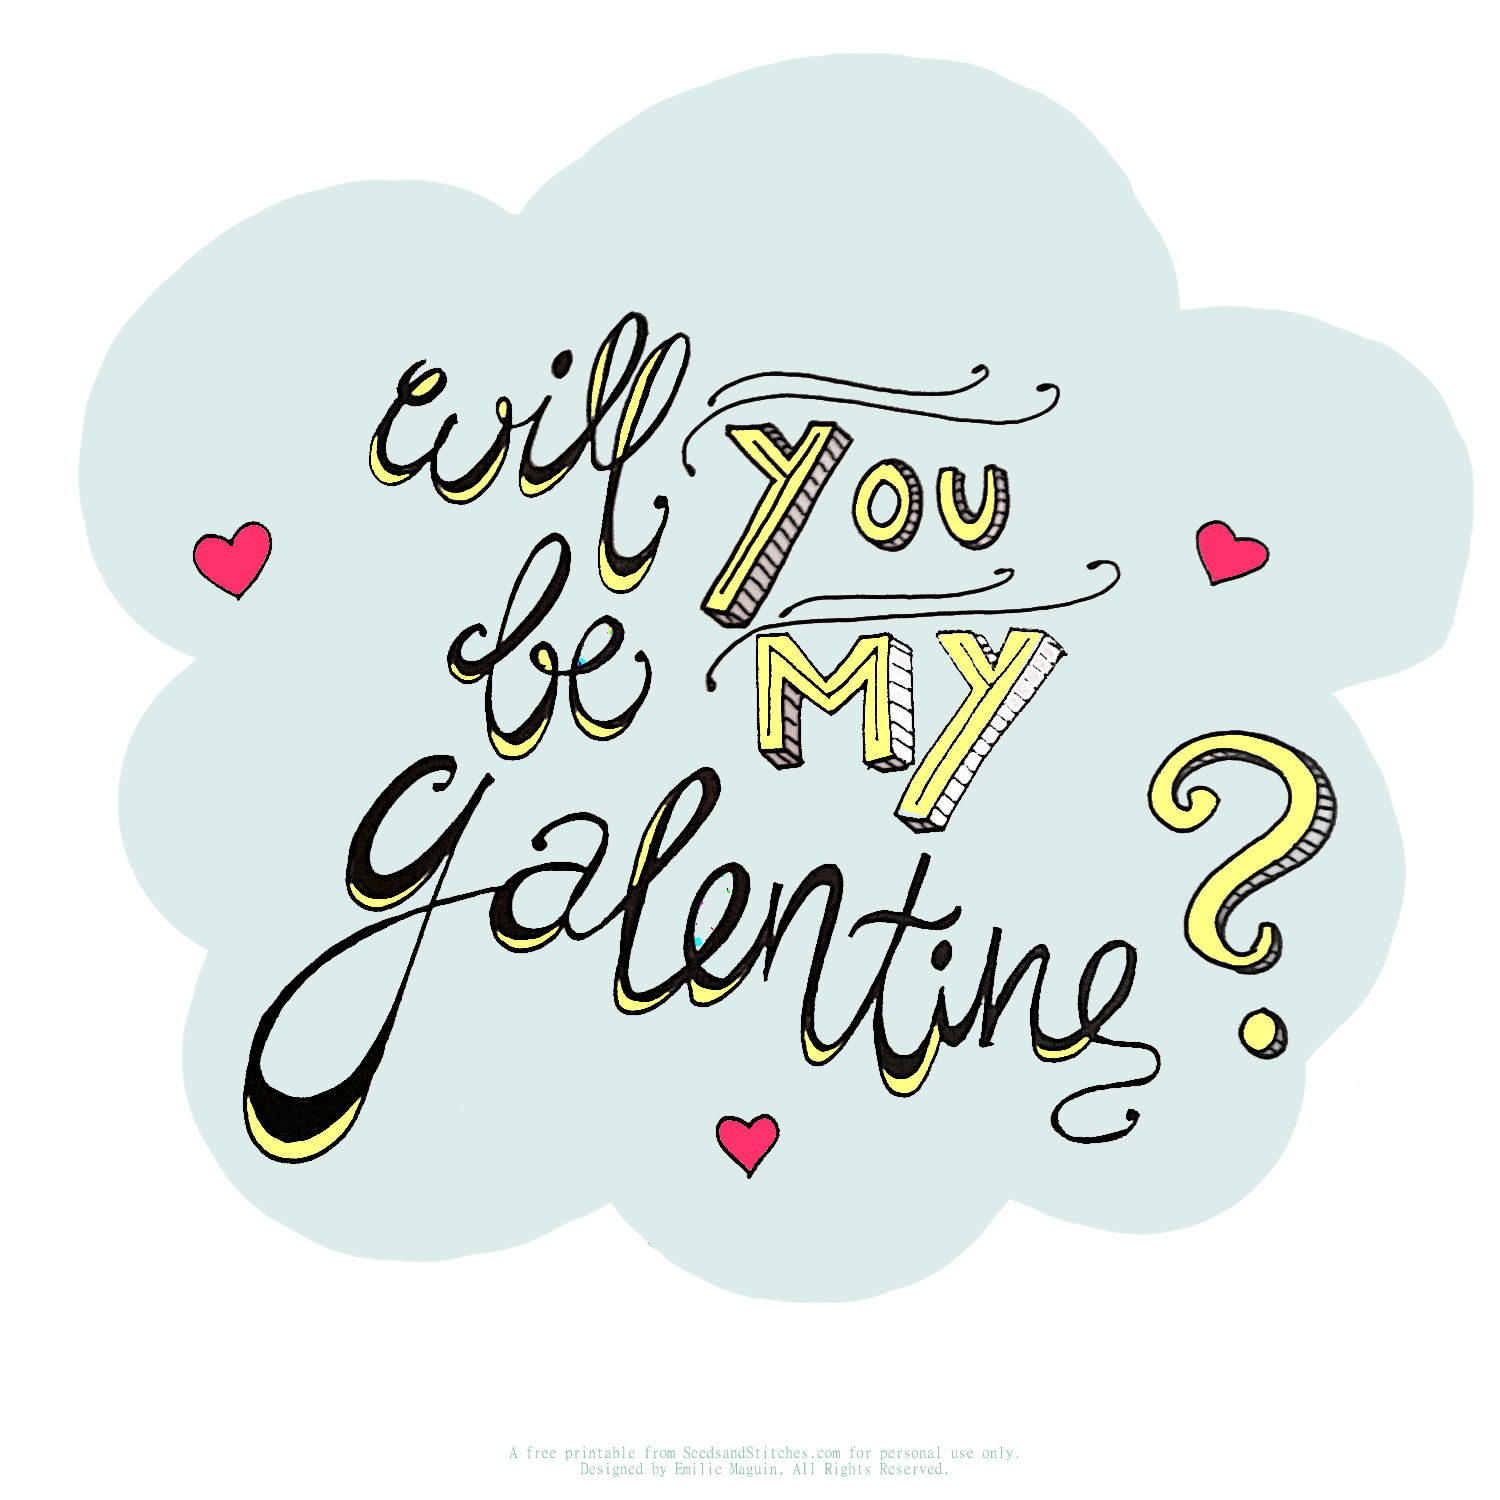 Free printabel/ emailable Galentines card by Emilie Maguin for Seeds and Stitches blog